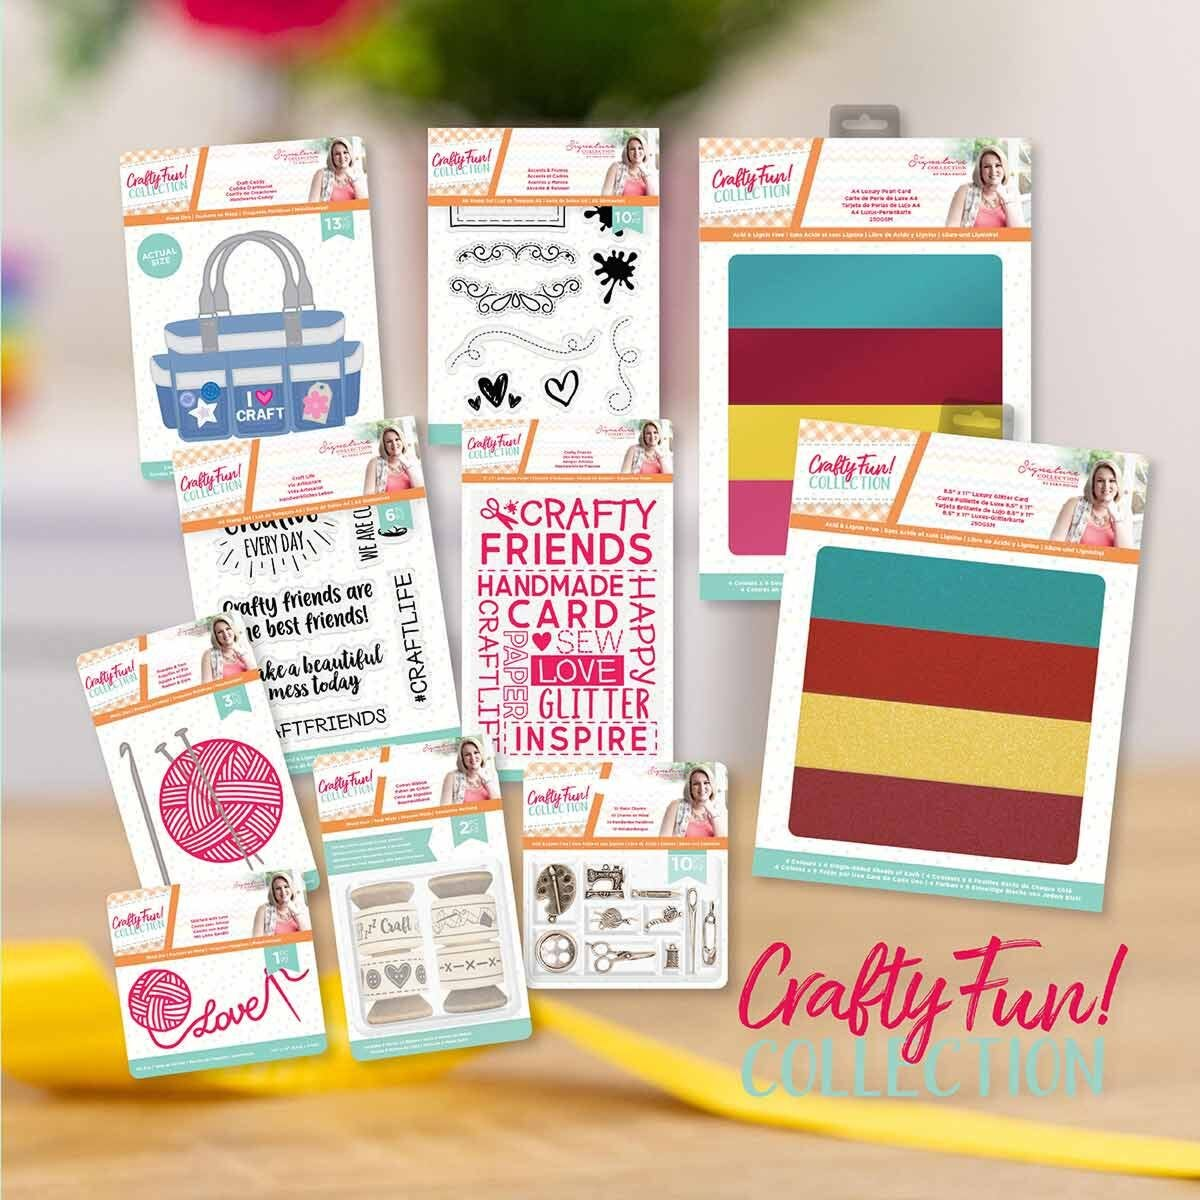 Crafters Companion Crafty Fun Knitting Design Collection